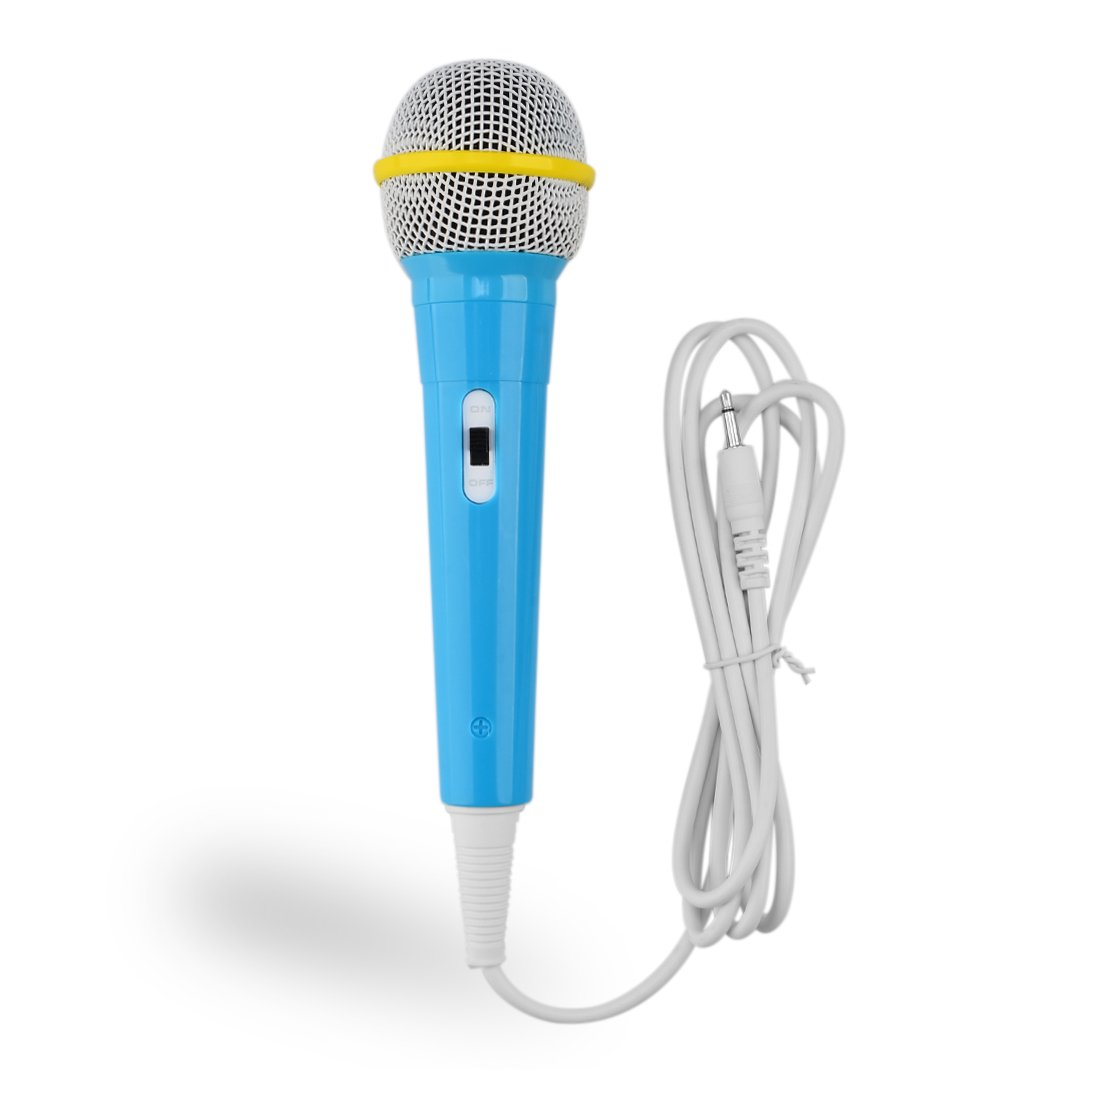 TXXCI Children Wired Microphone Mic Karaoke Singing Kid Funny Gift Music Toy Wired Kids Children Electronic Microphone - Blue (Blue)